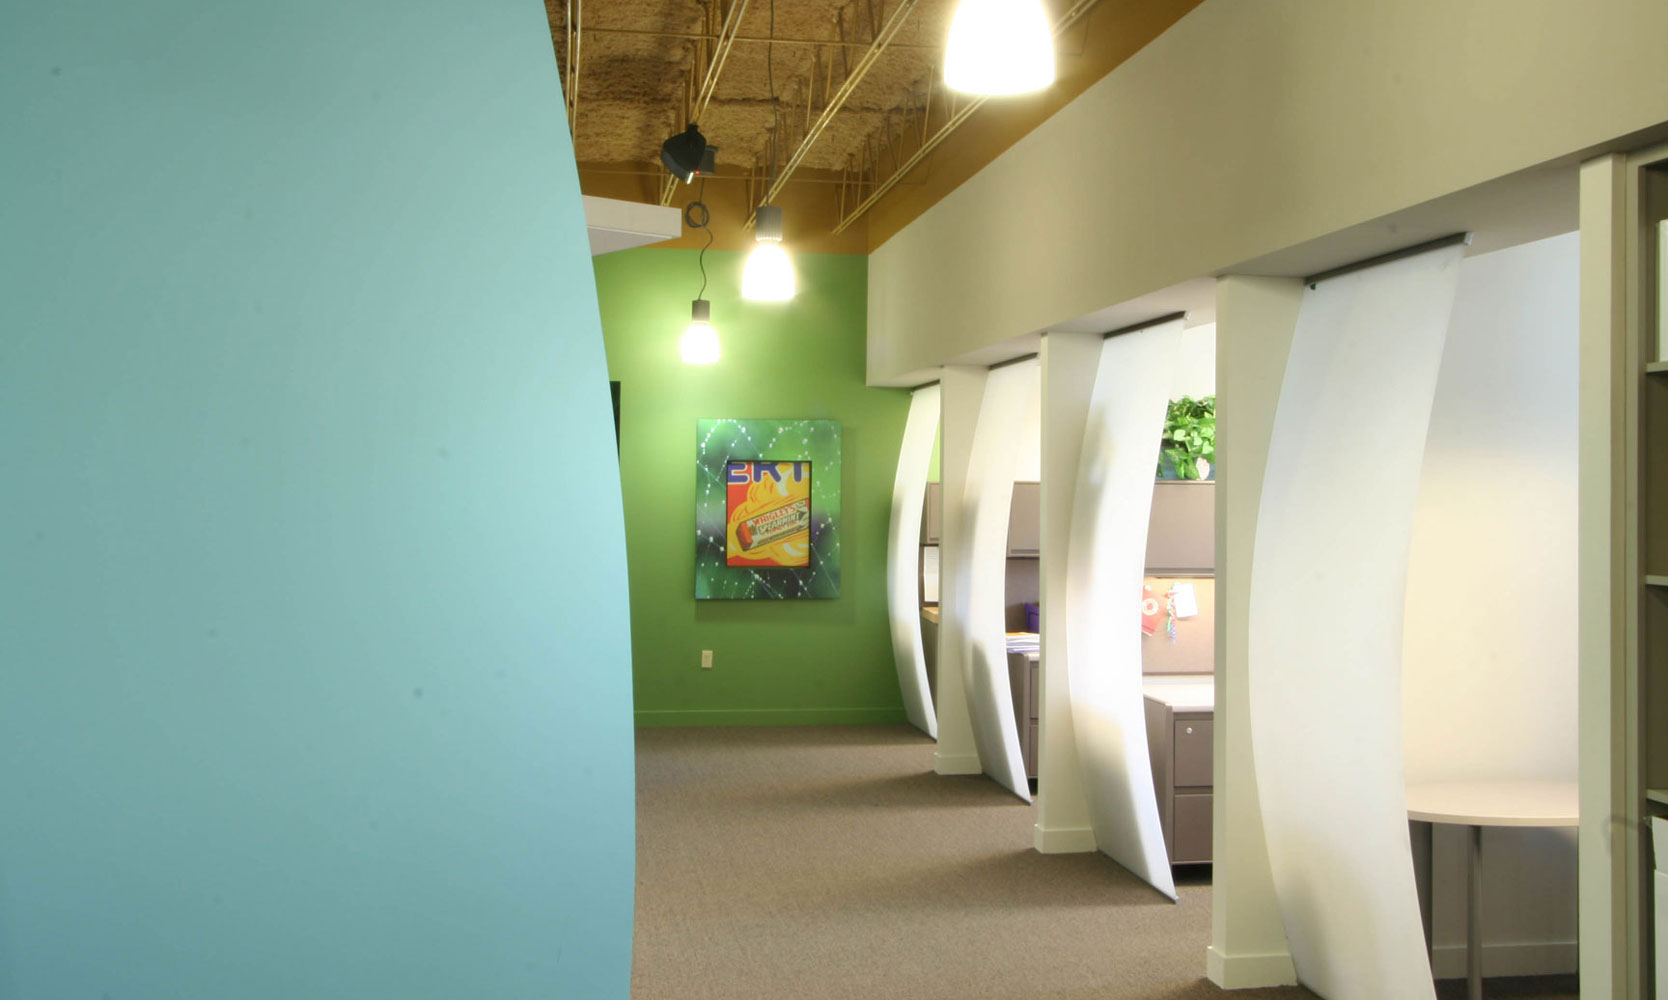 Bright colors in open office spaces with curved glass partitions